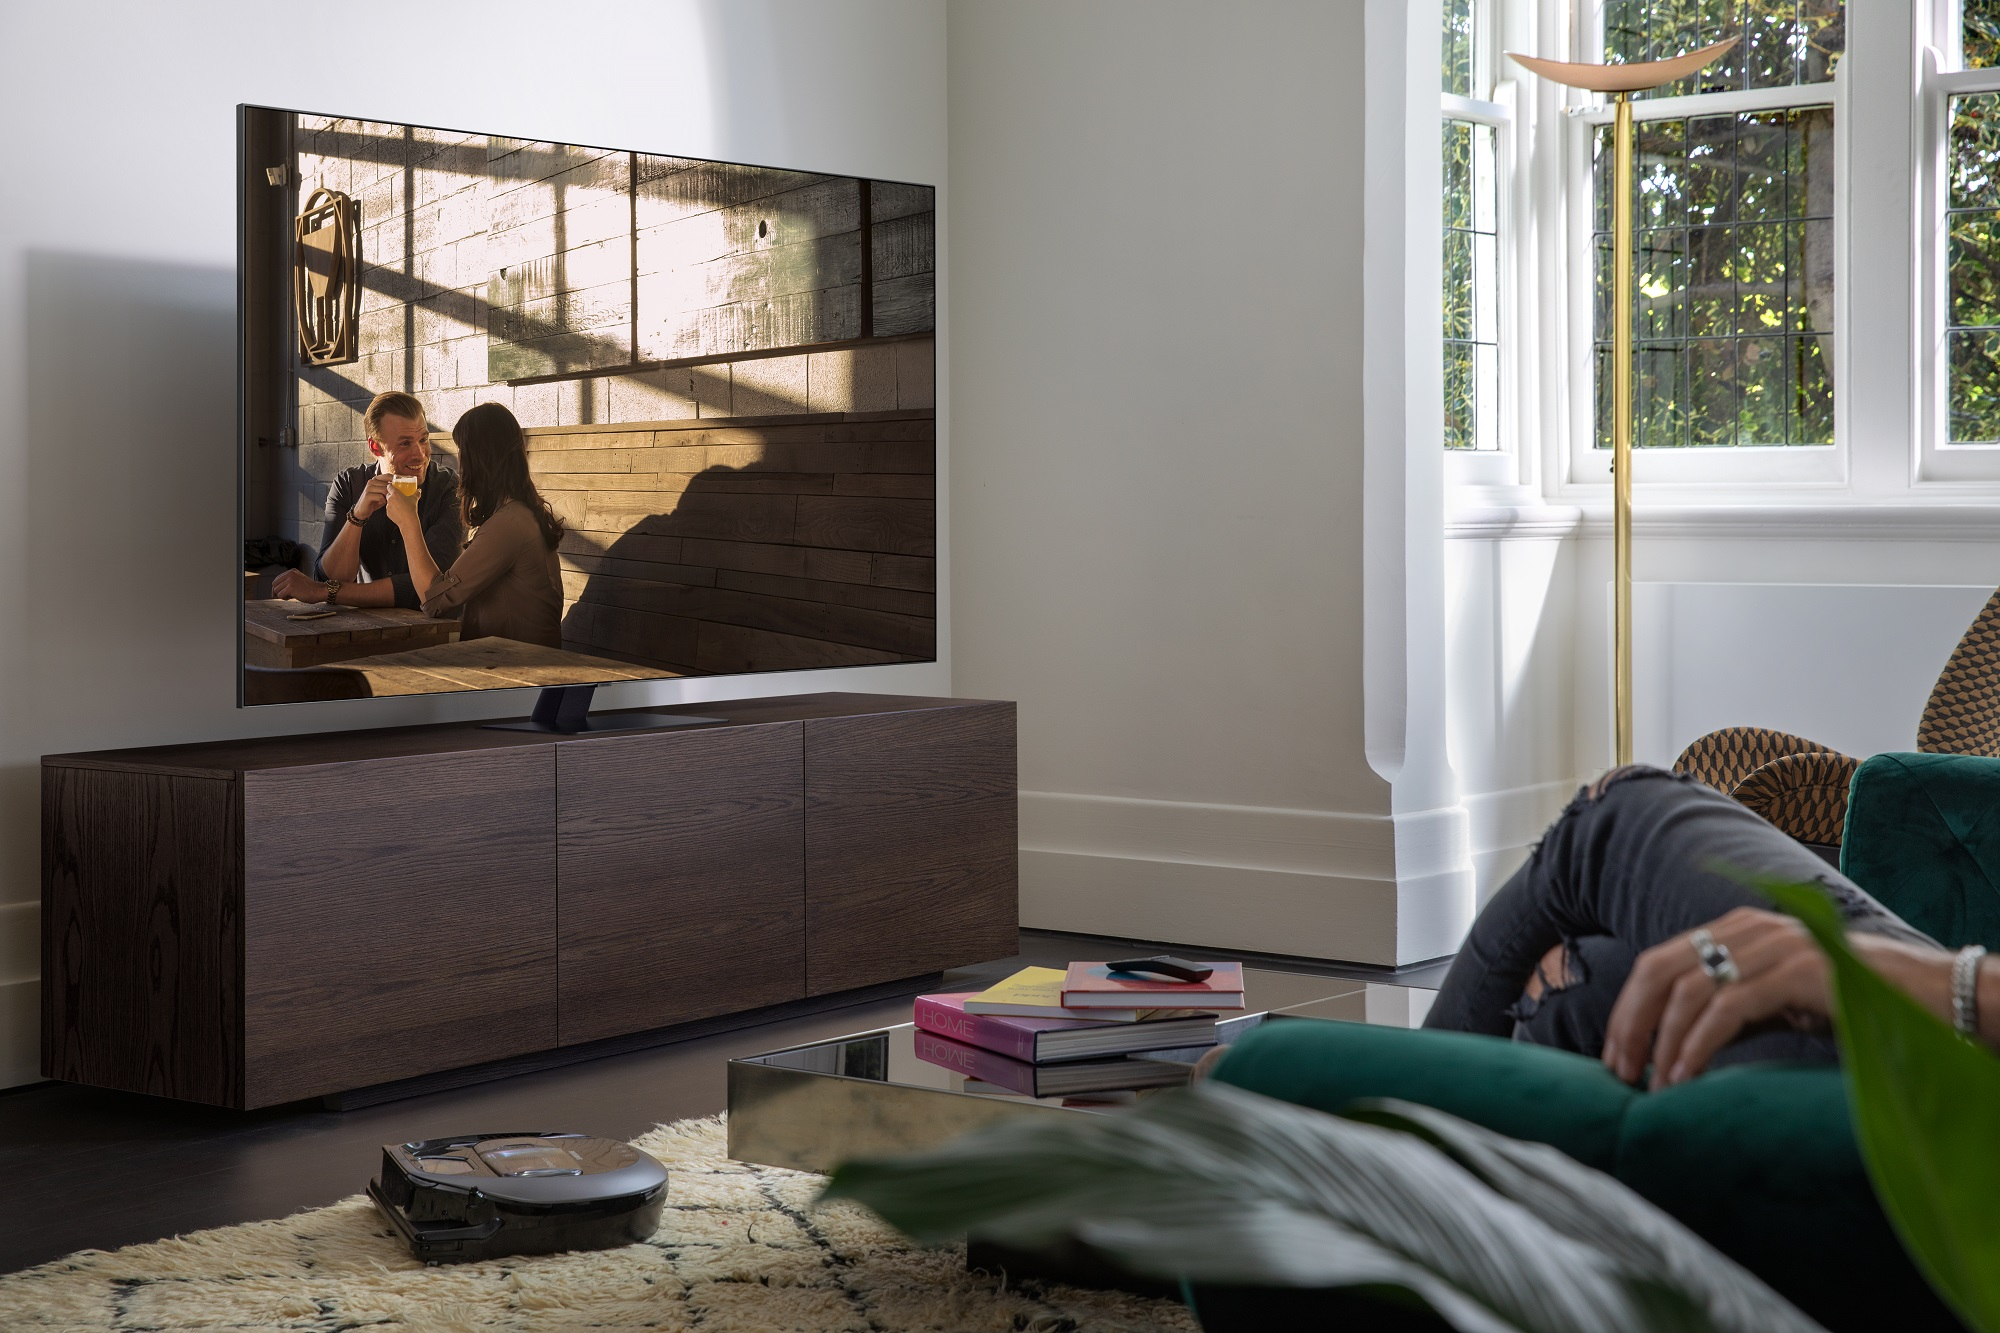 Recreate Cinematic Experiences with Samsungs Latest Displays and Soundbars Right In Your Living Room